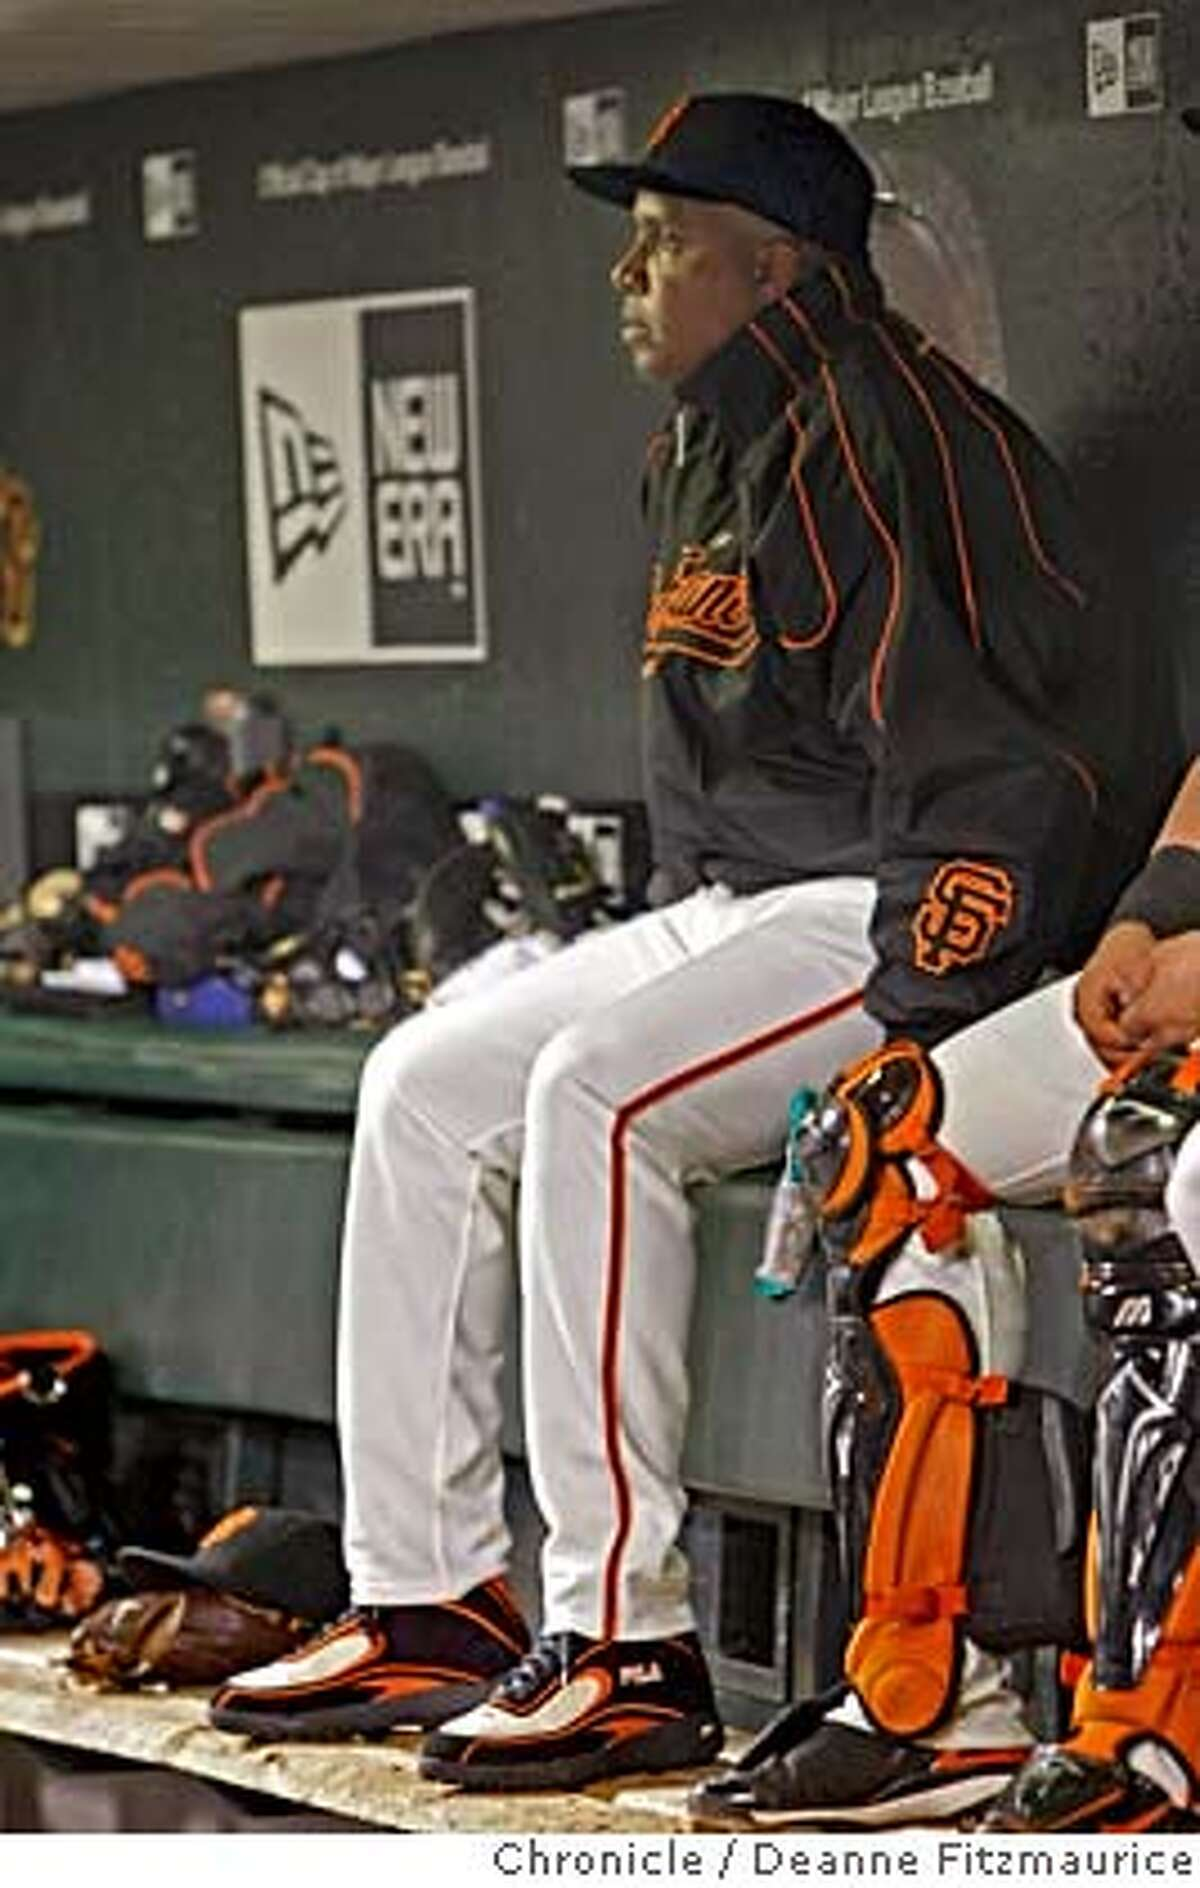 bonds_091_fitzmaurice.jpg Barry Bonds sits on the bench on the night it is announced that he will not be back next year as a San Francisco Giants player. Photographed in San Francisco on 9/21/07. Deanne Fitzmaurice / The Chronicle